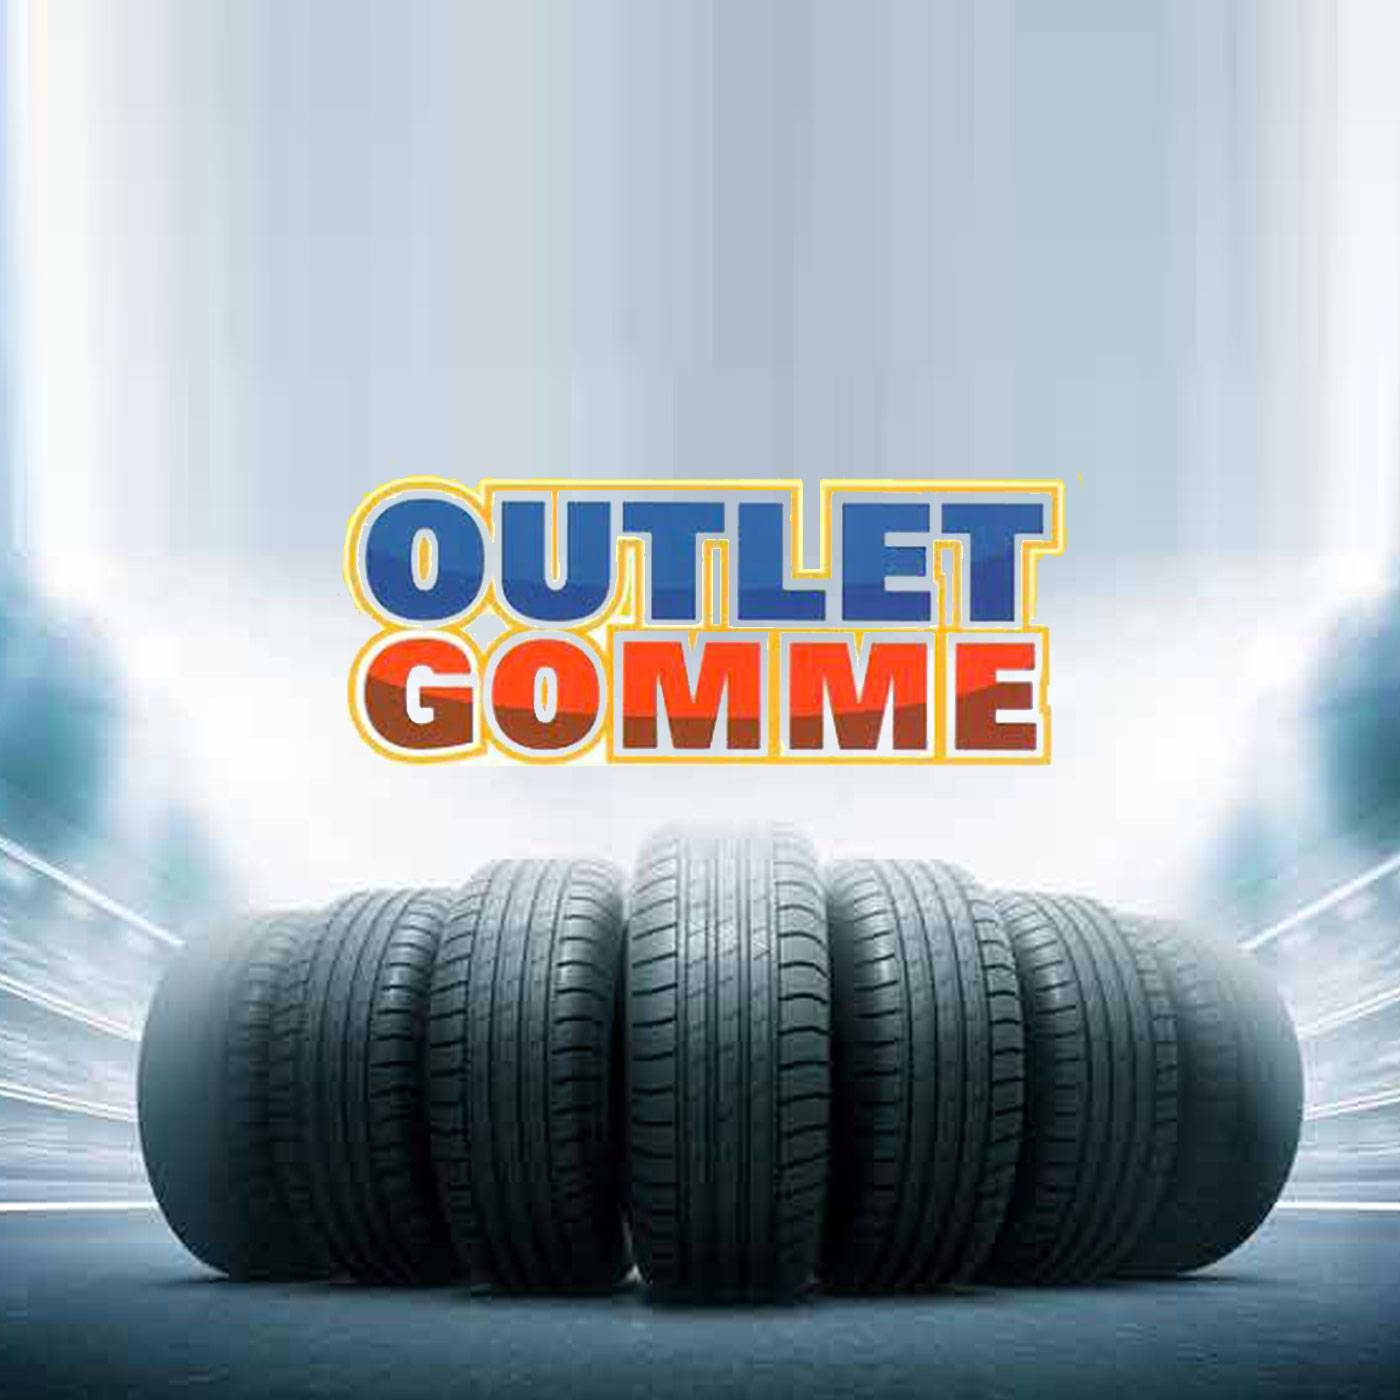 Gomma and Service - Outlet Gomme